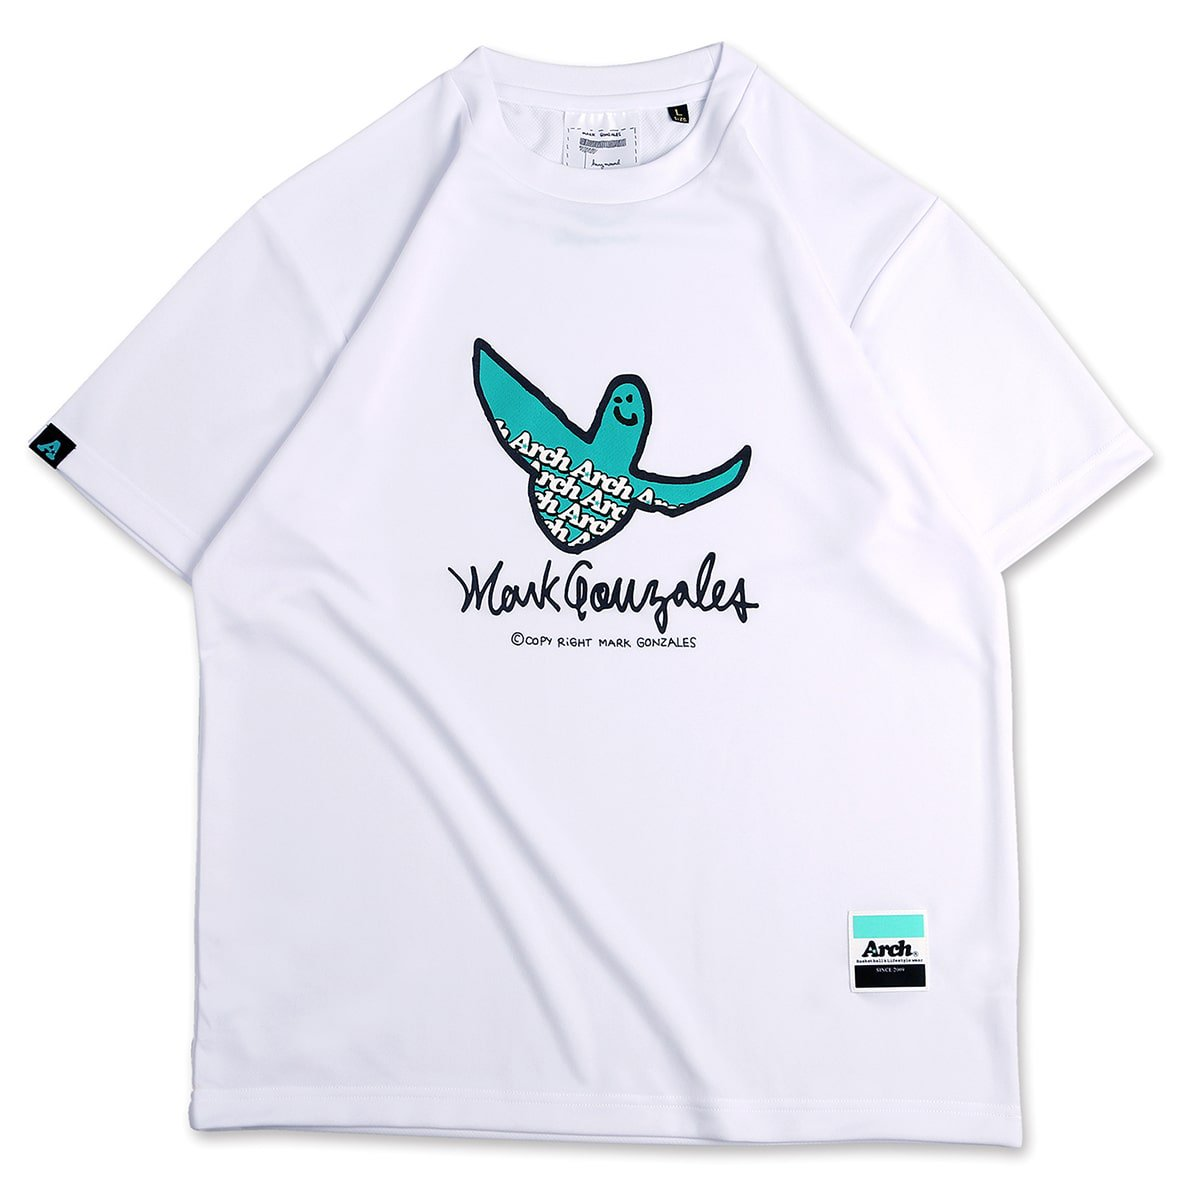 Mark Gonzales x Arch logo tee [DRY]【white】